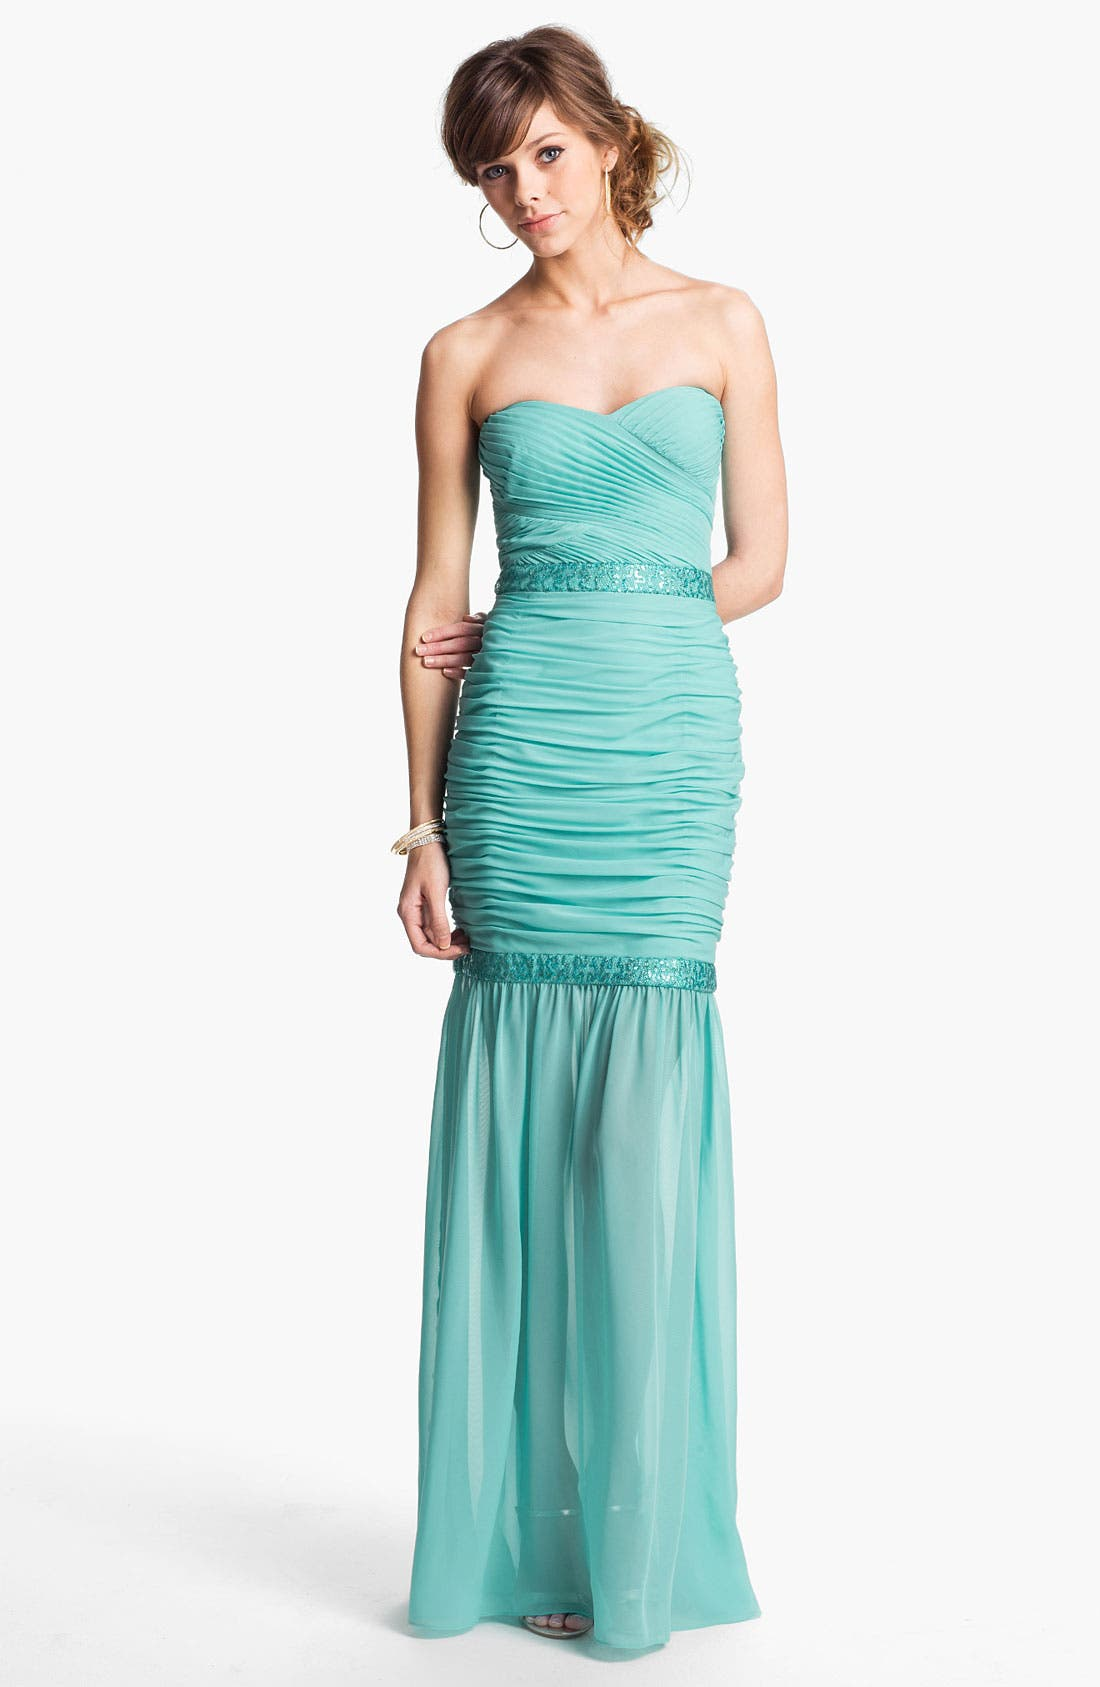 Alternate Image 1 Selected - Hailey by Adrianna Papell Embellished Chiffon Mermaid Dress (Online Only)